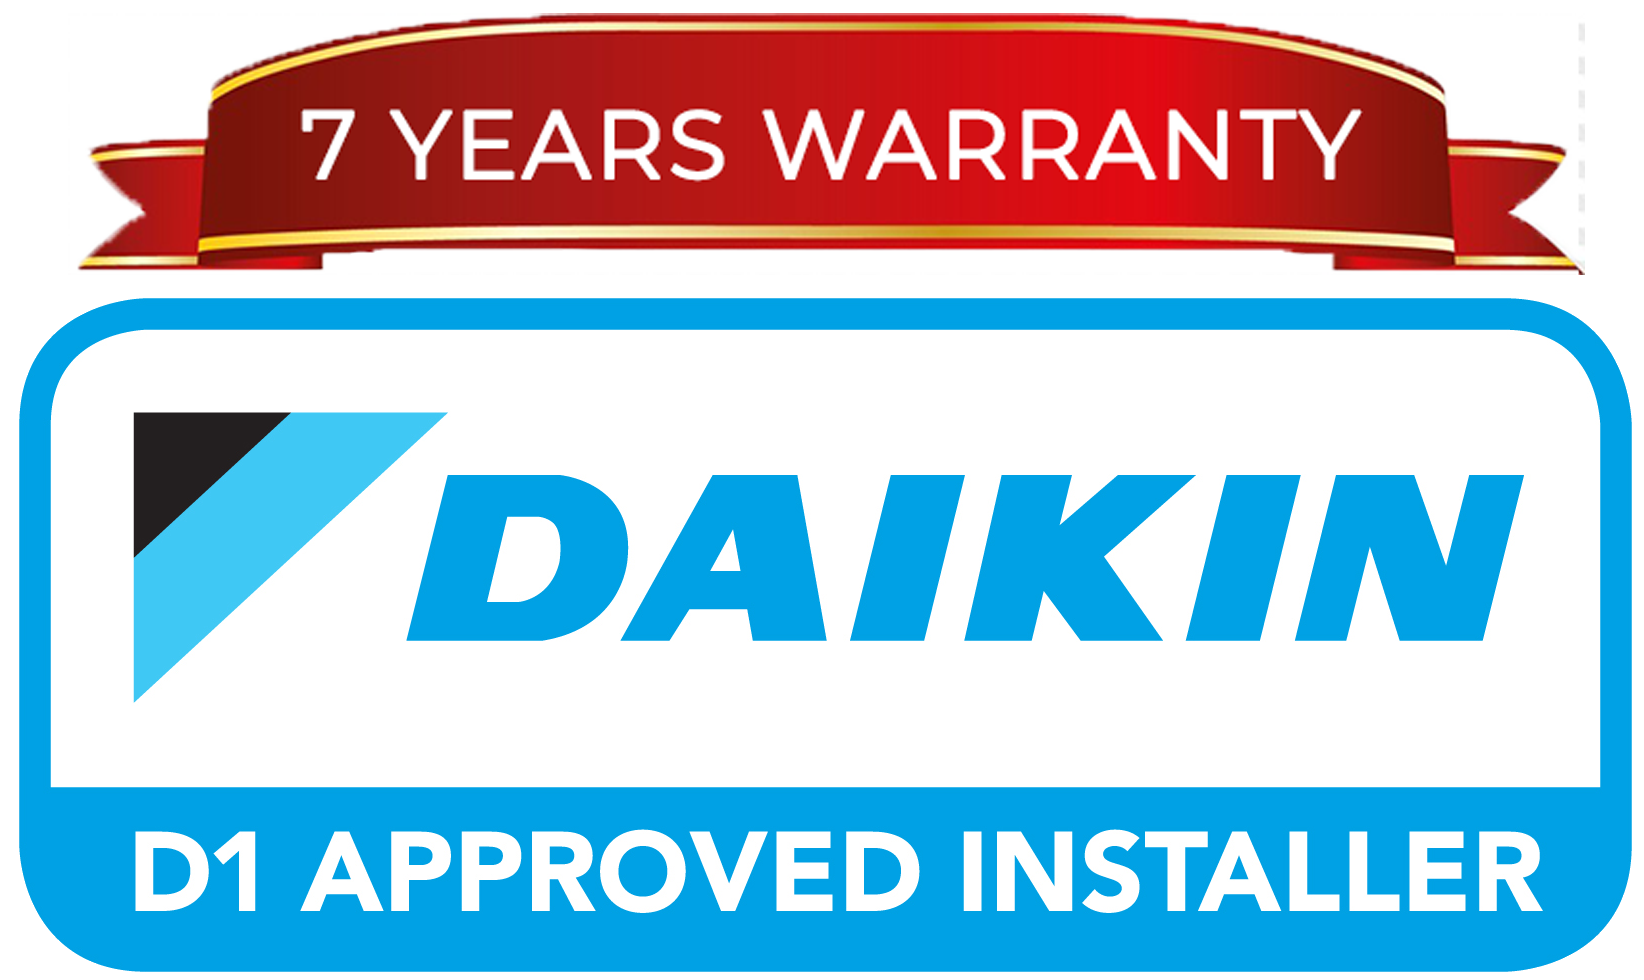 DAIKIN_Approved-supplier-logo.fw_7yearsmanufacturers